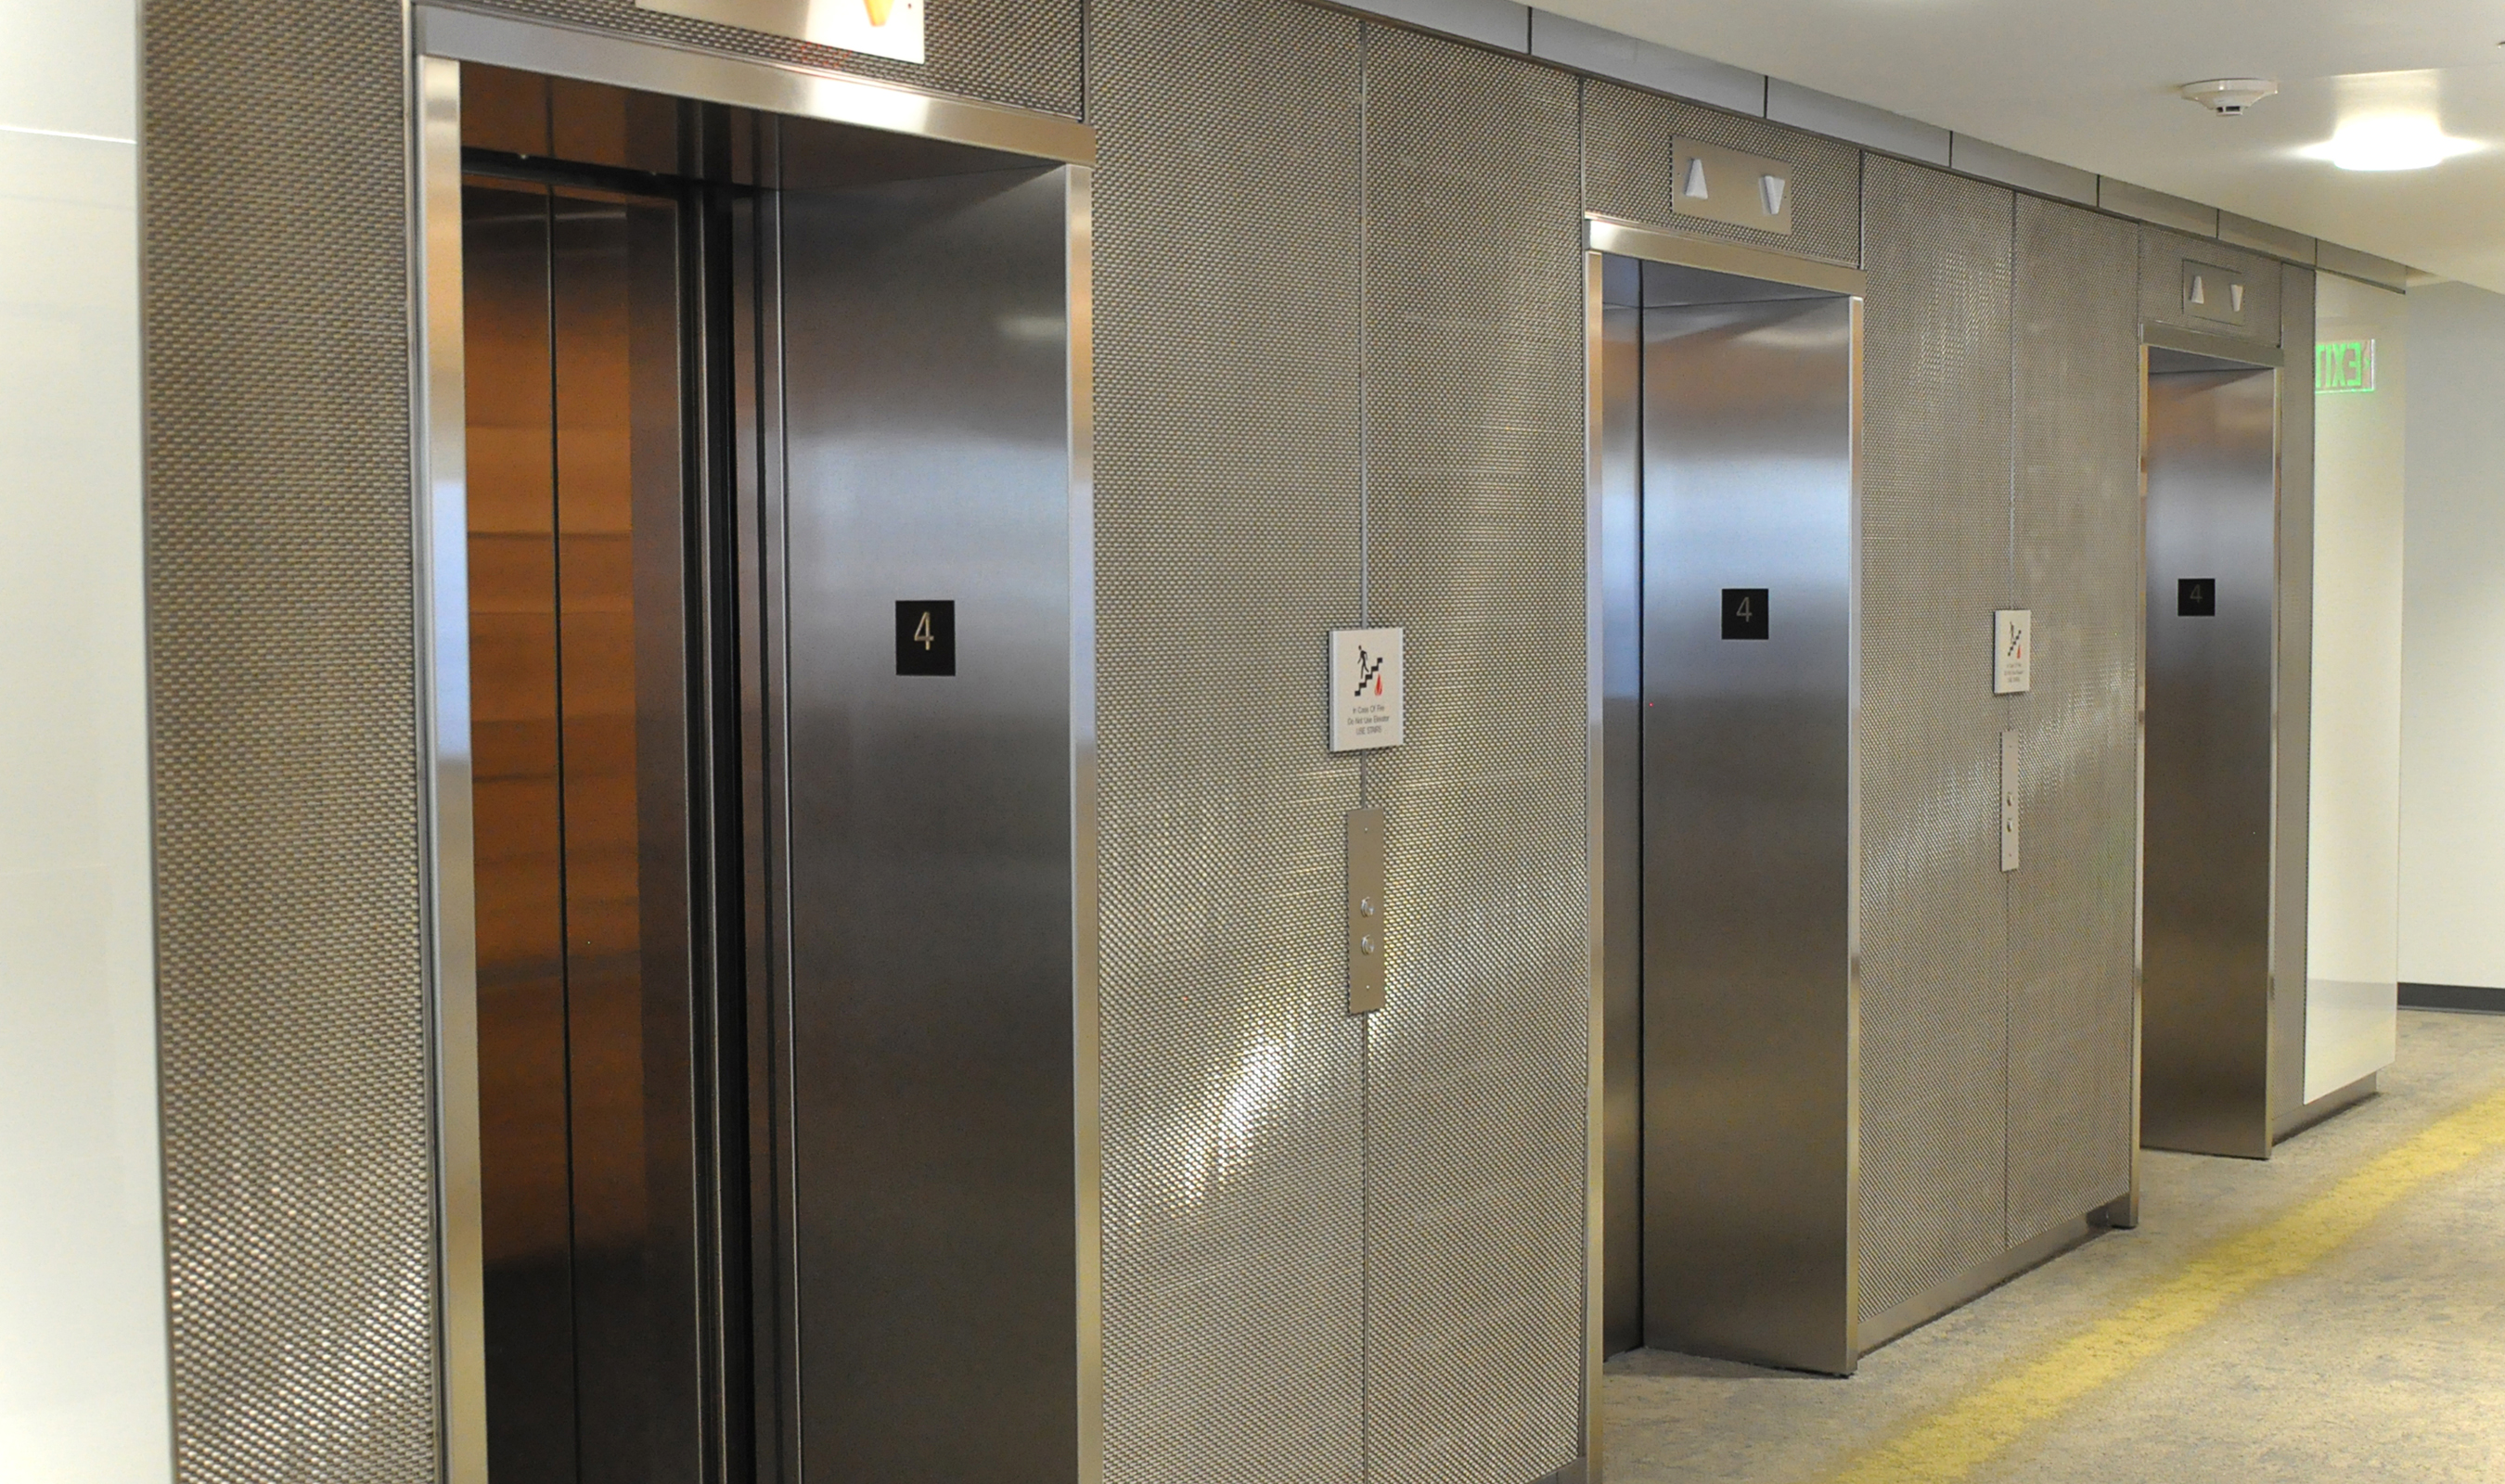 Banker Wire metal fabric was incorporated around the elevator openings and control panels, blending a stylish look with full functionality.